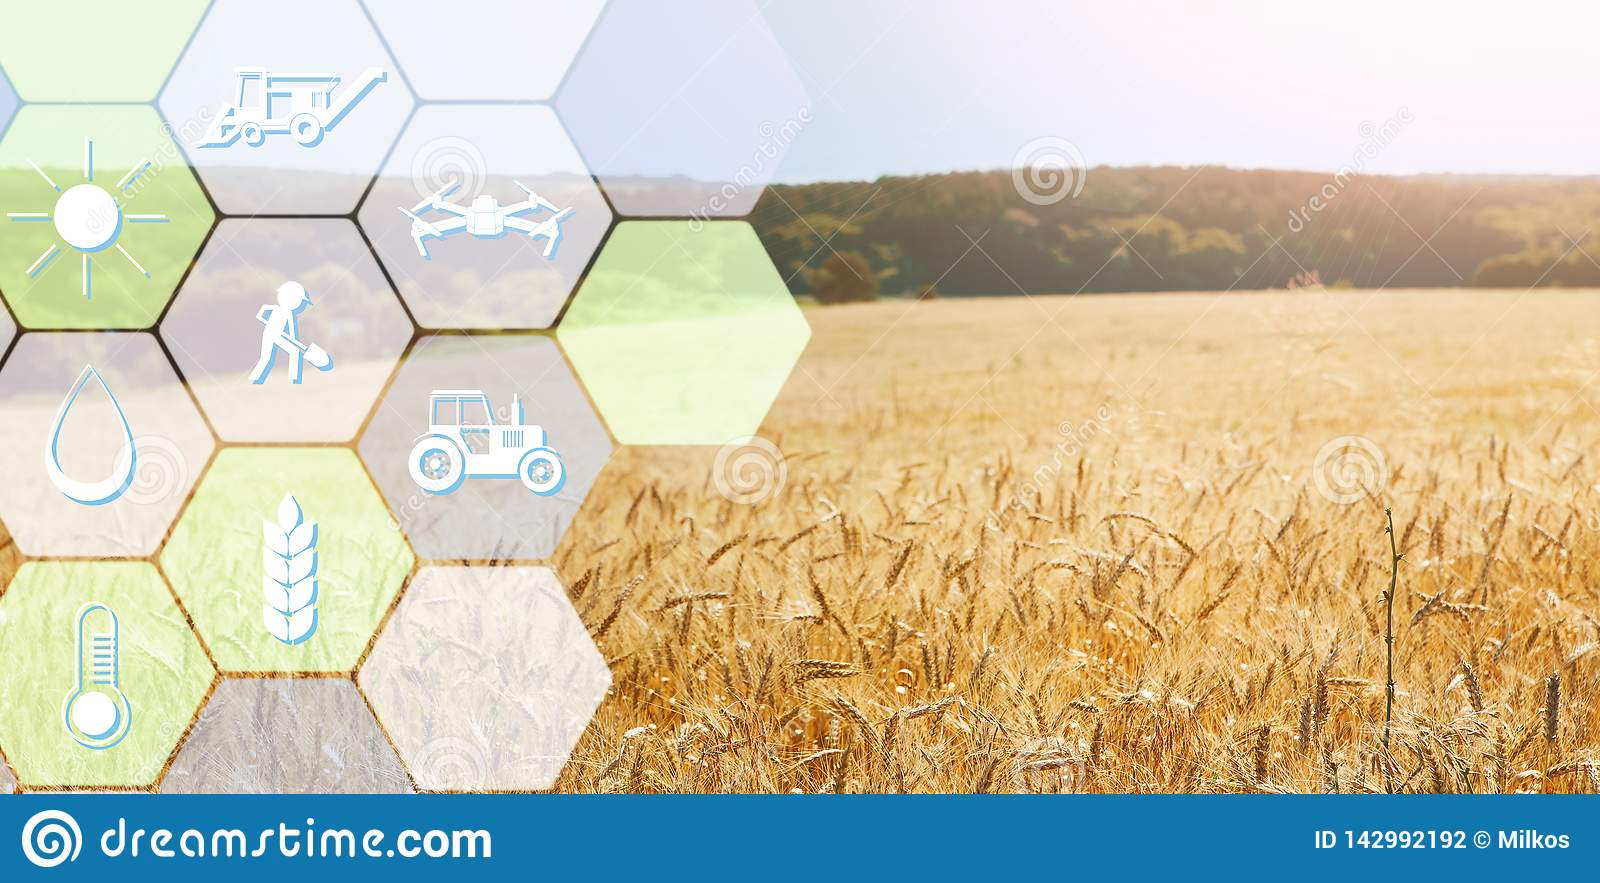 Digital Icons For Management And Monitoring Agriculture Stock Photo